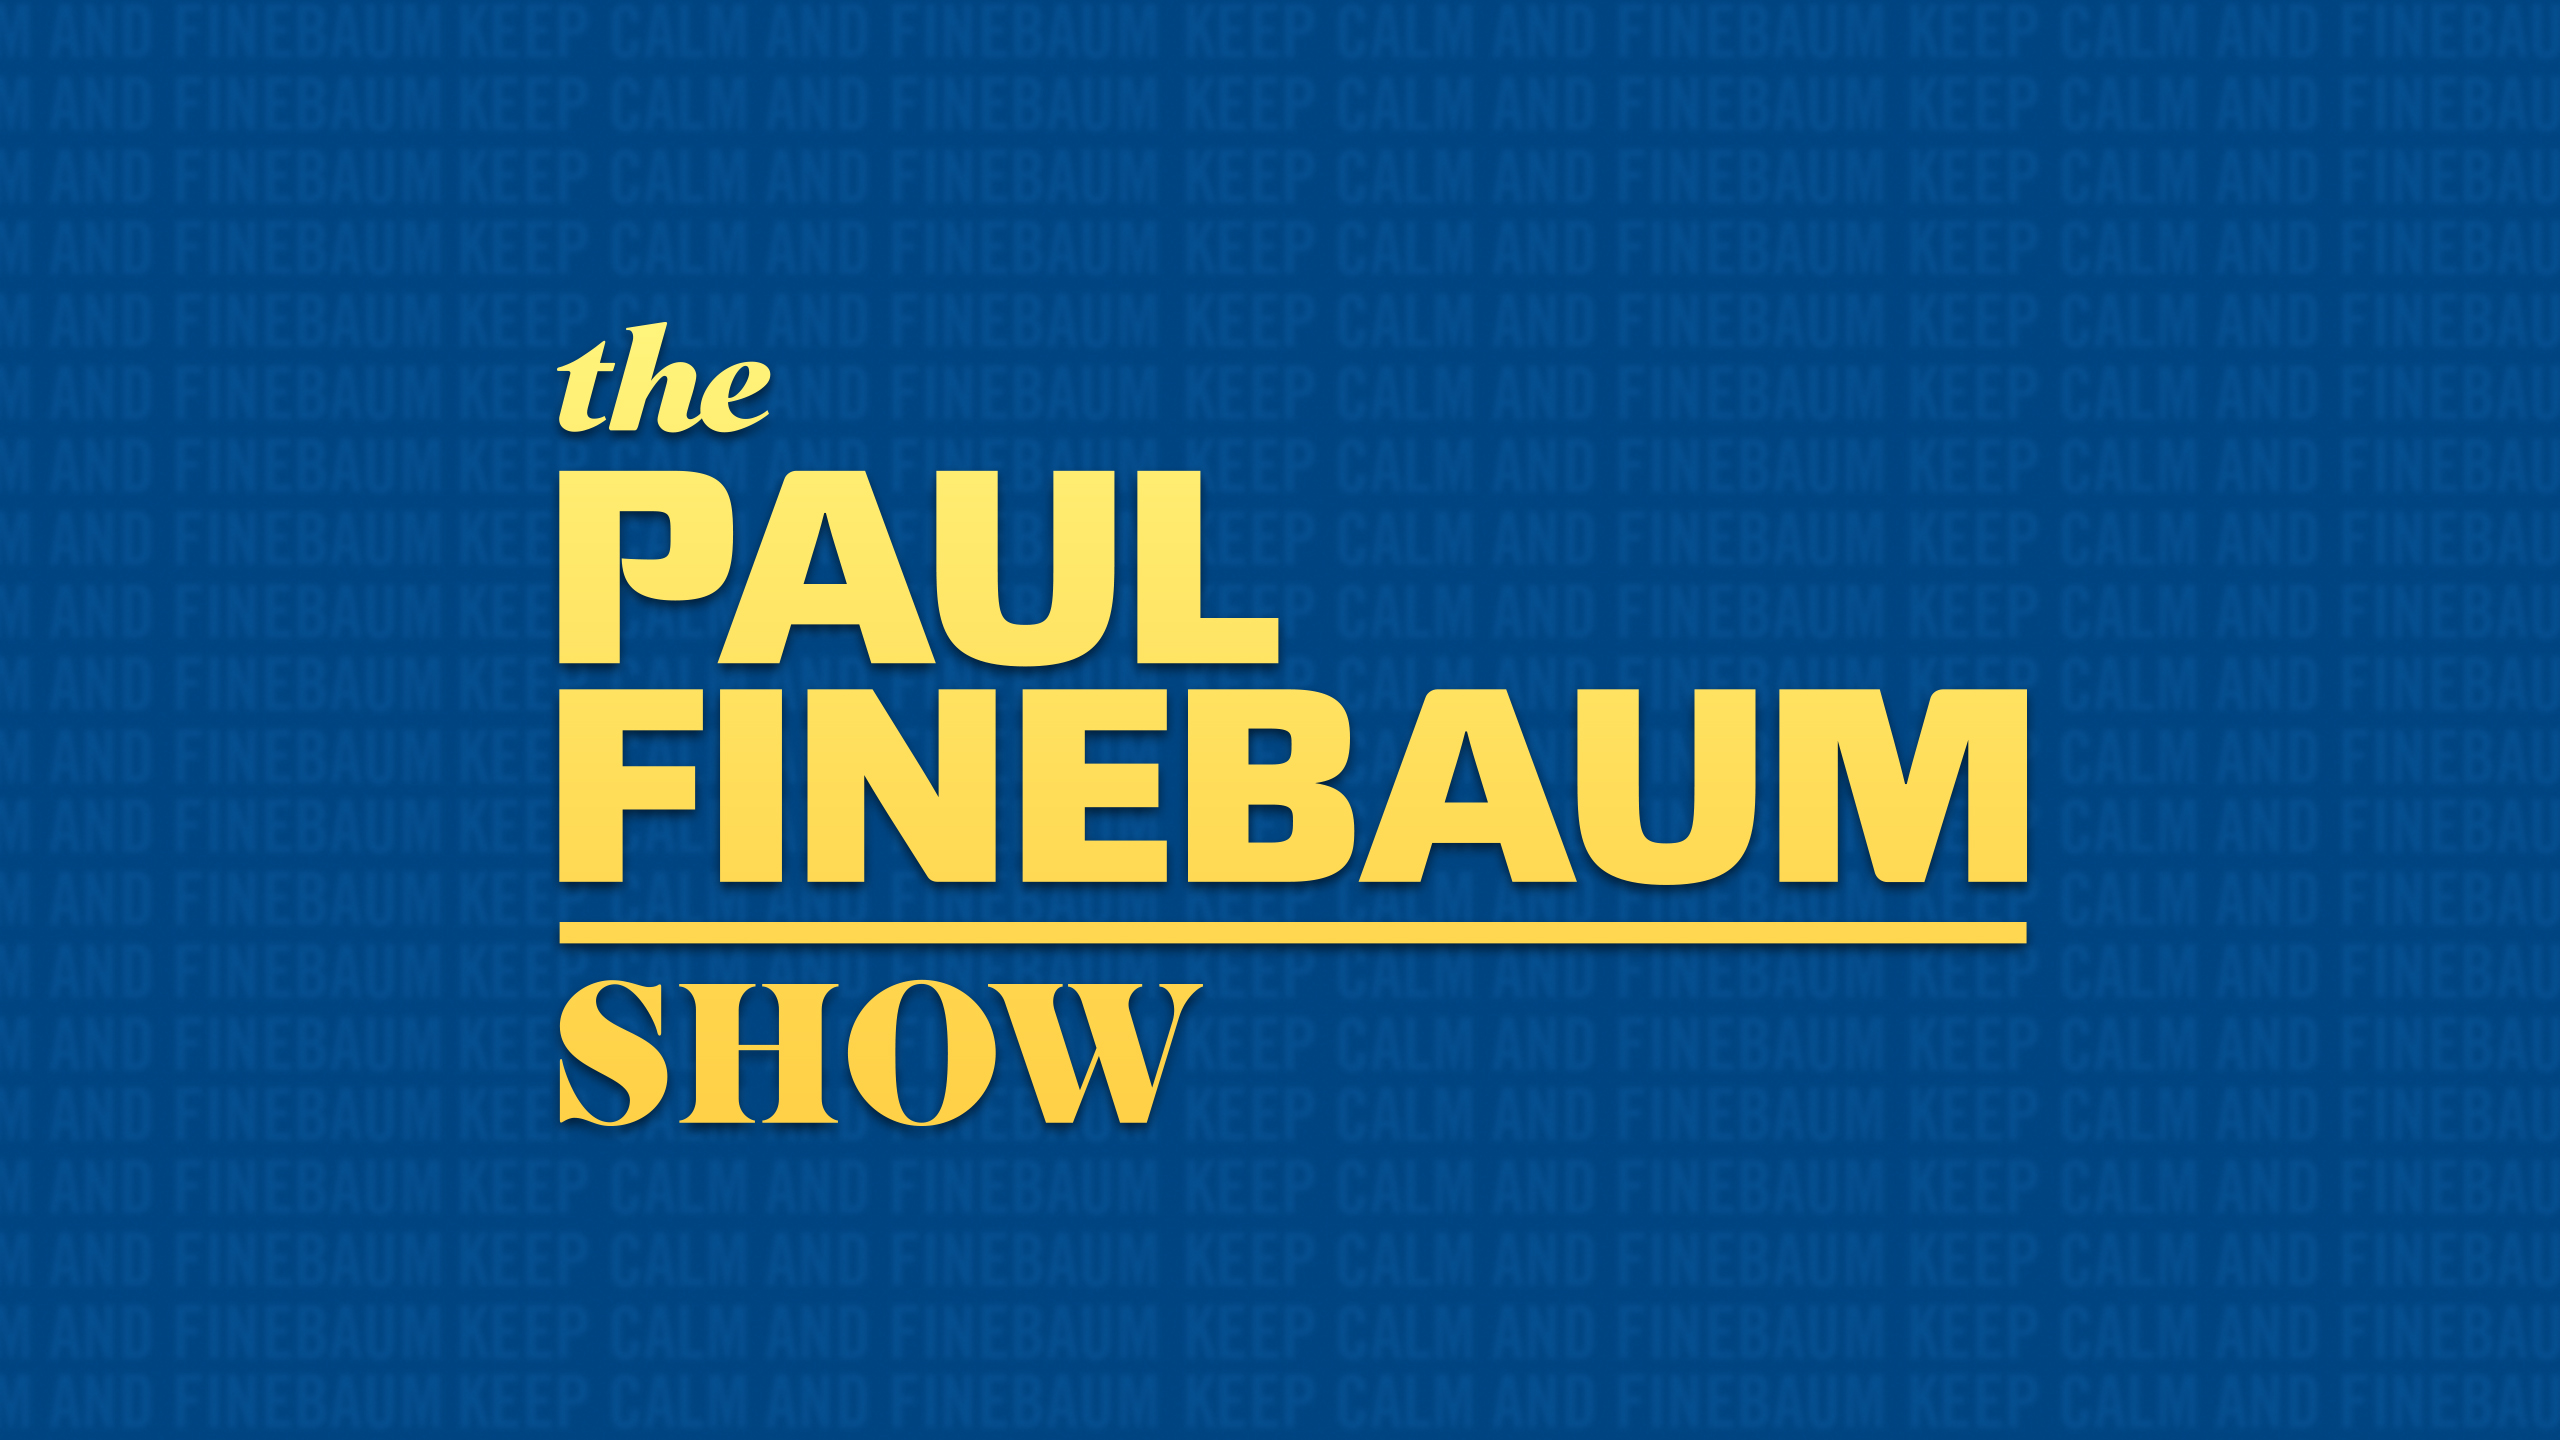 Mon, 9/24 - The Paul Finebaum Show Presented by Regions Bank